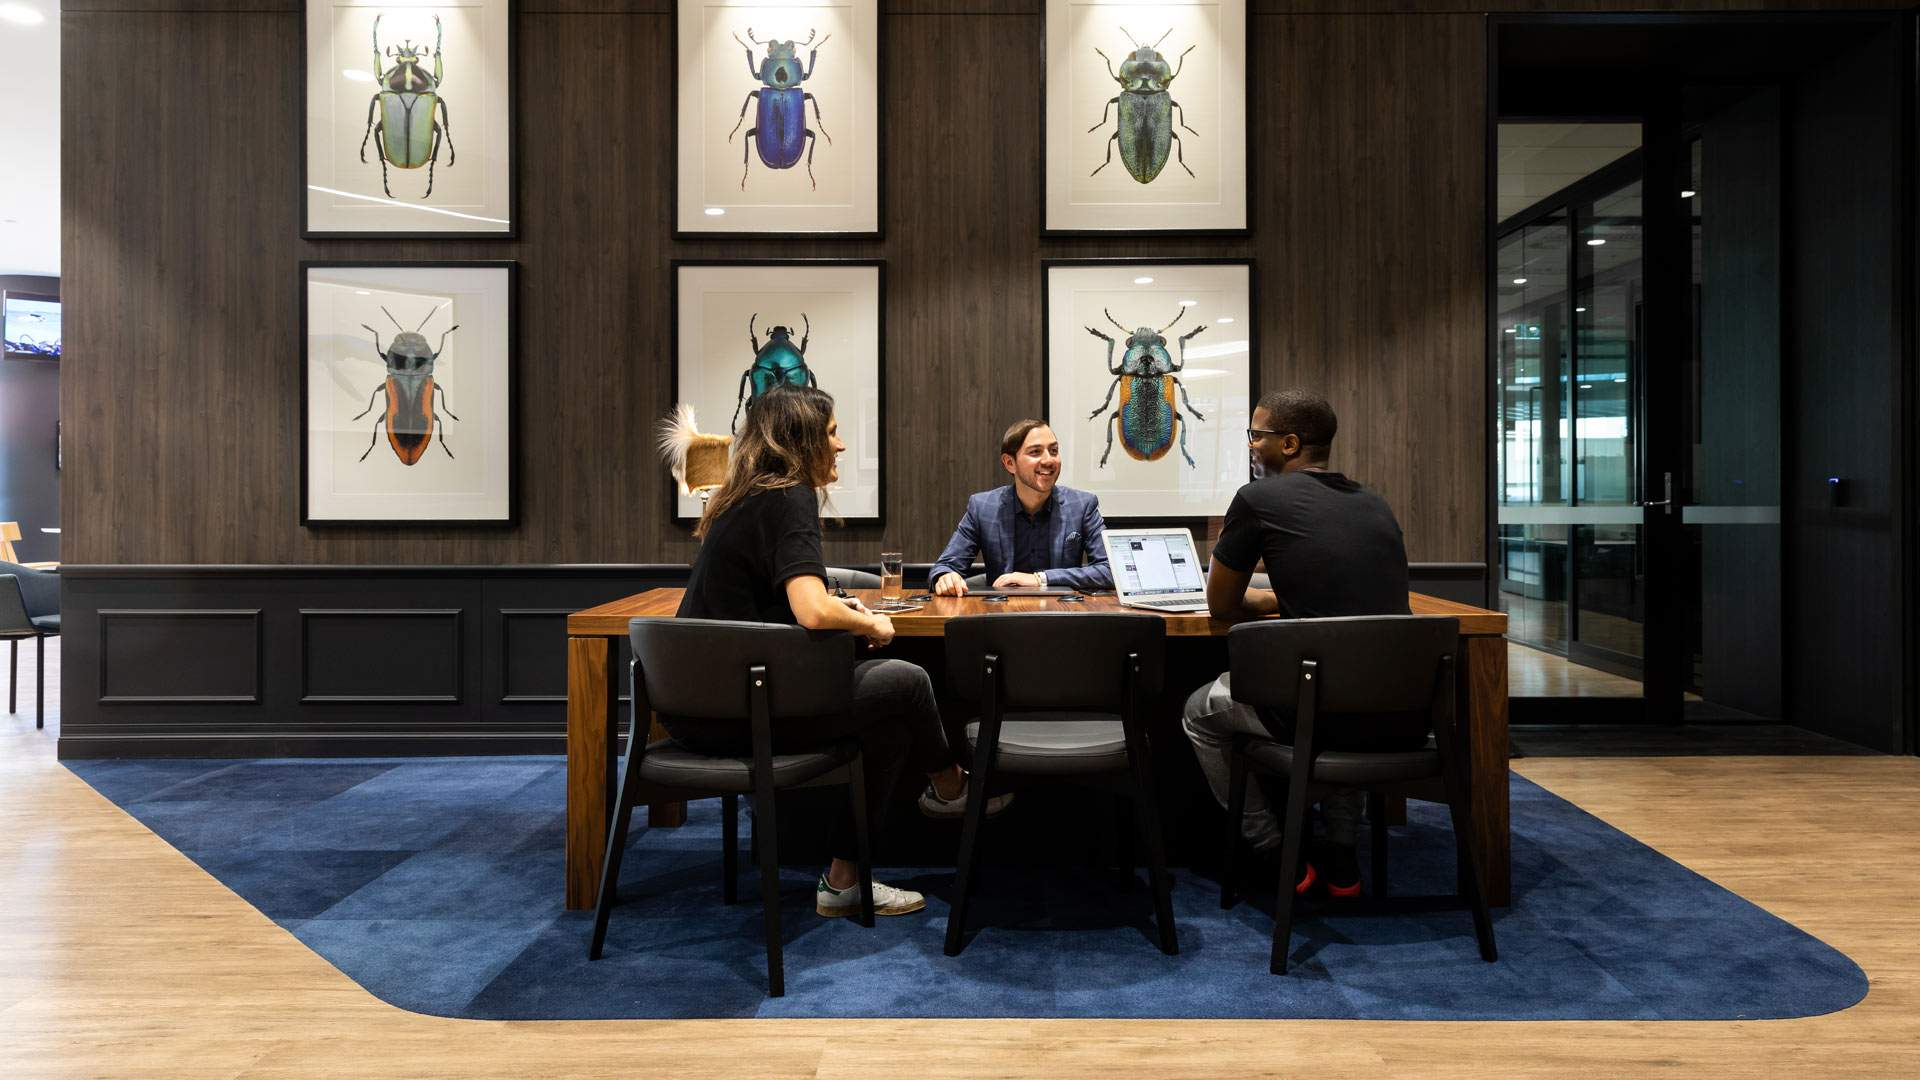 A Bluffer's Guide to Coworking Spaces